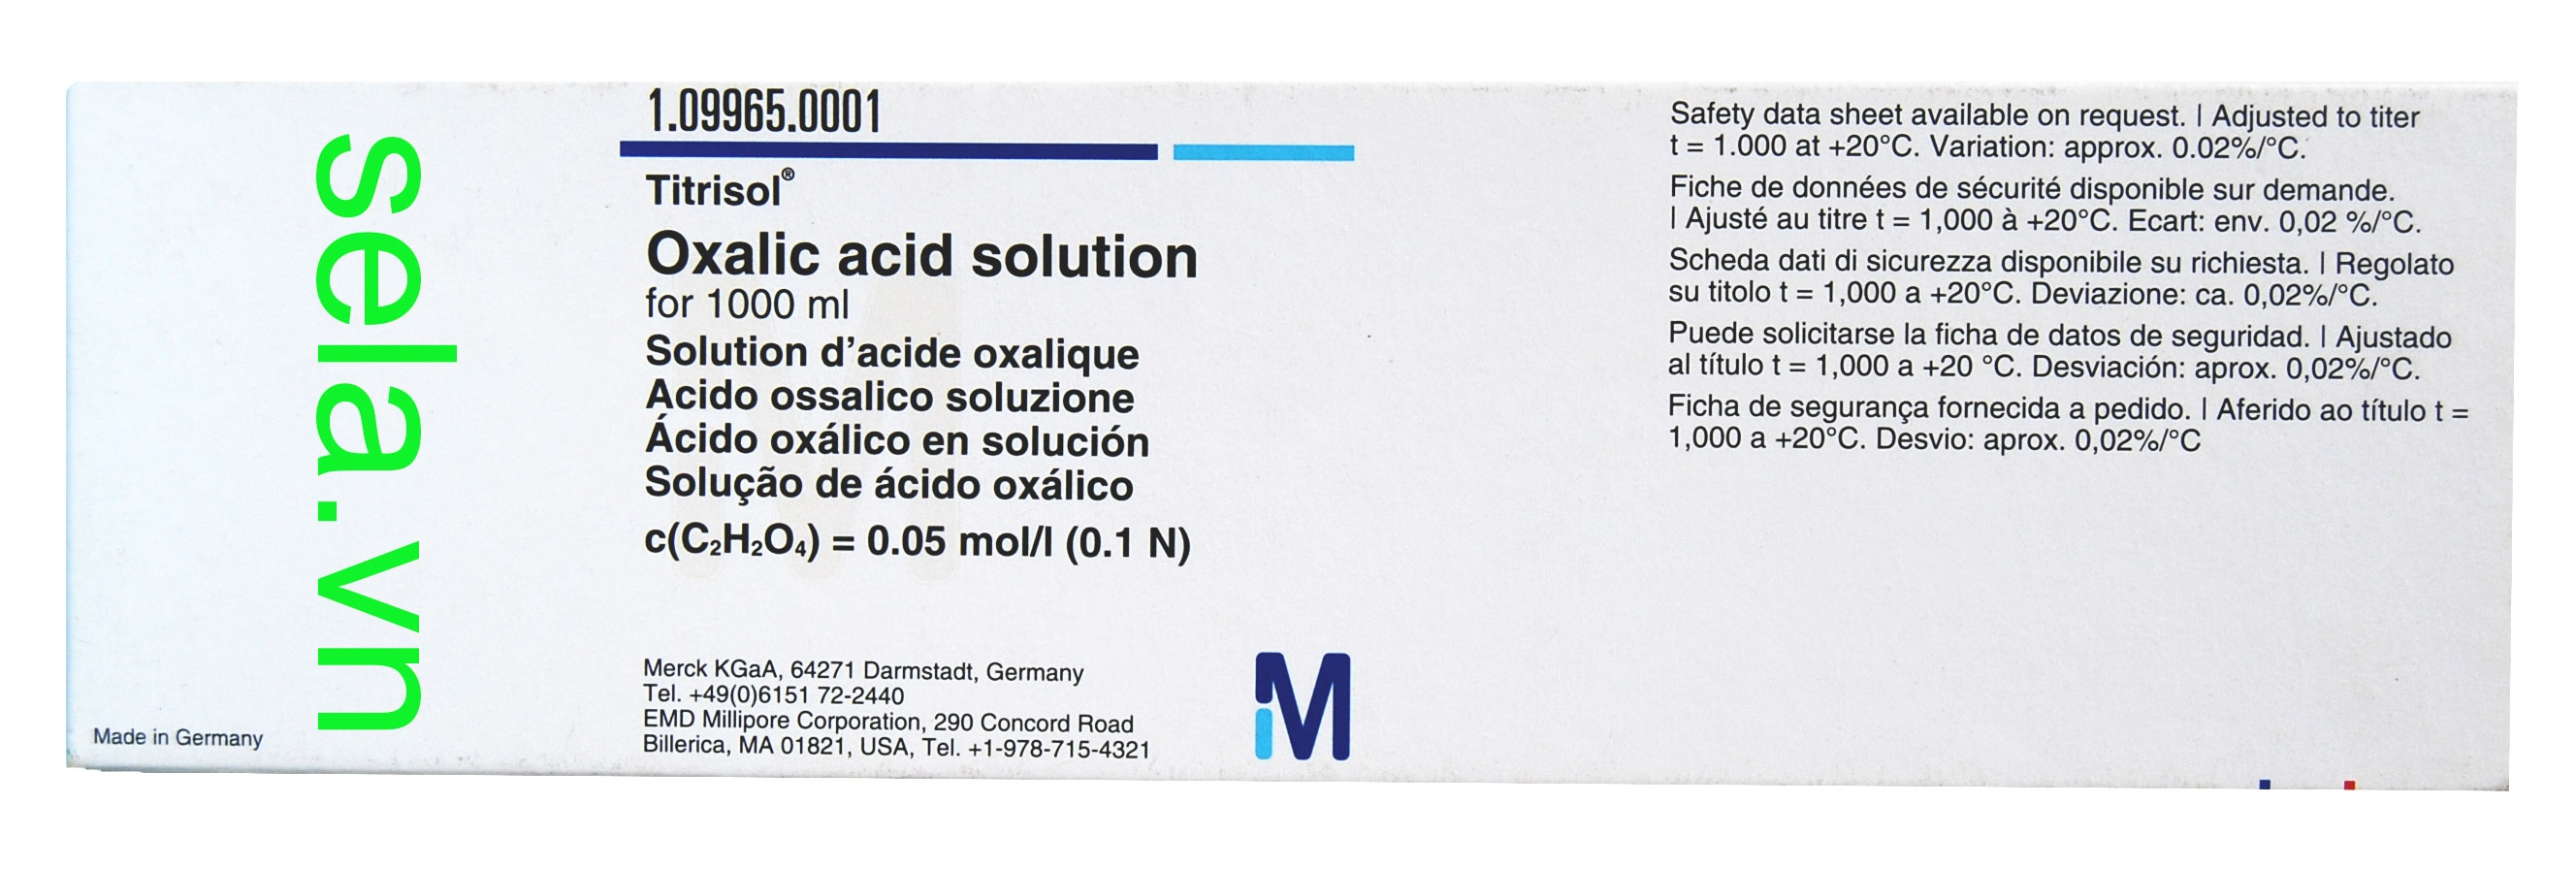 Oxalic acid solution for 1000 ml, c(C₂H₂O₄) = 0.05 mol/l (0.1 N) Titrisol®